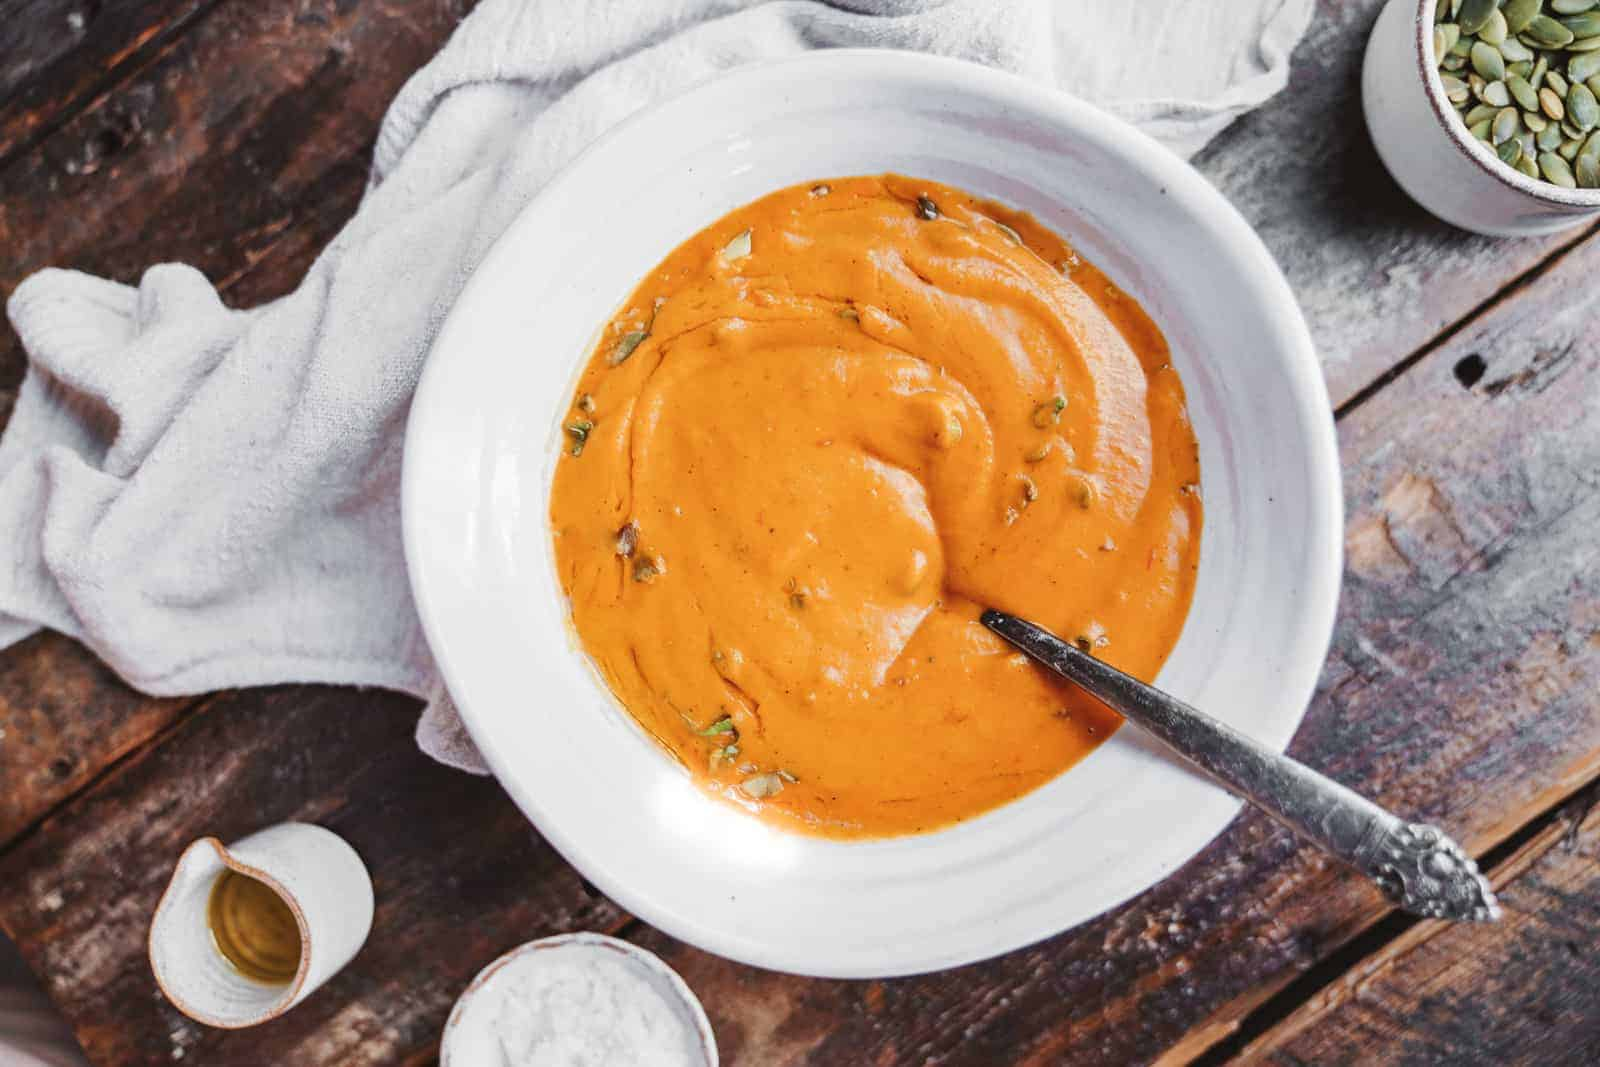 A spoon in a big bowl of creamy vegan carrot soup ready to be devoured at the table.